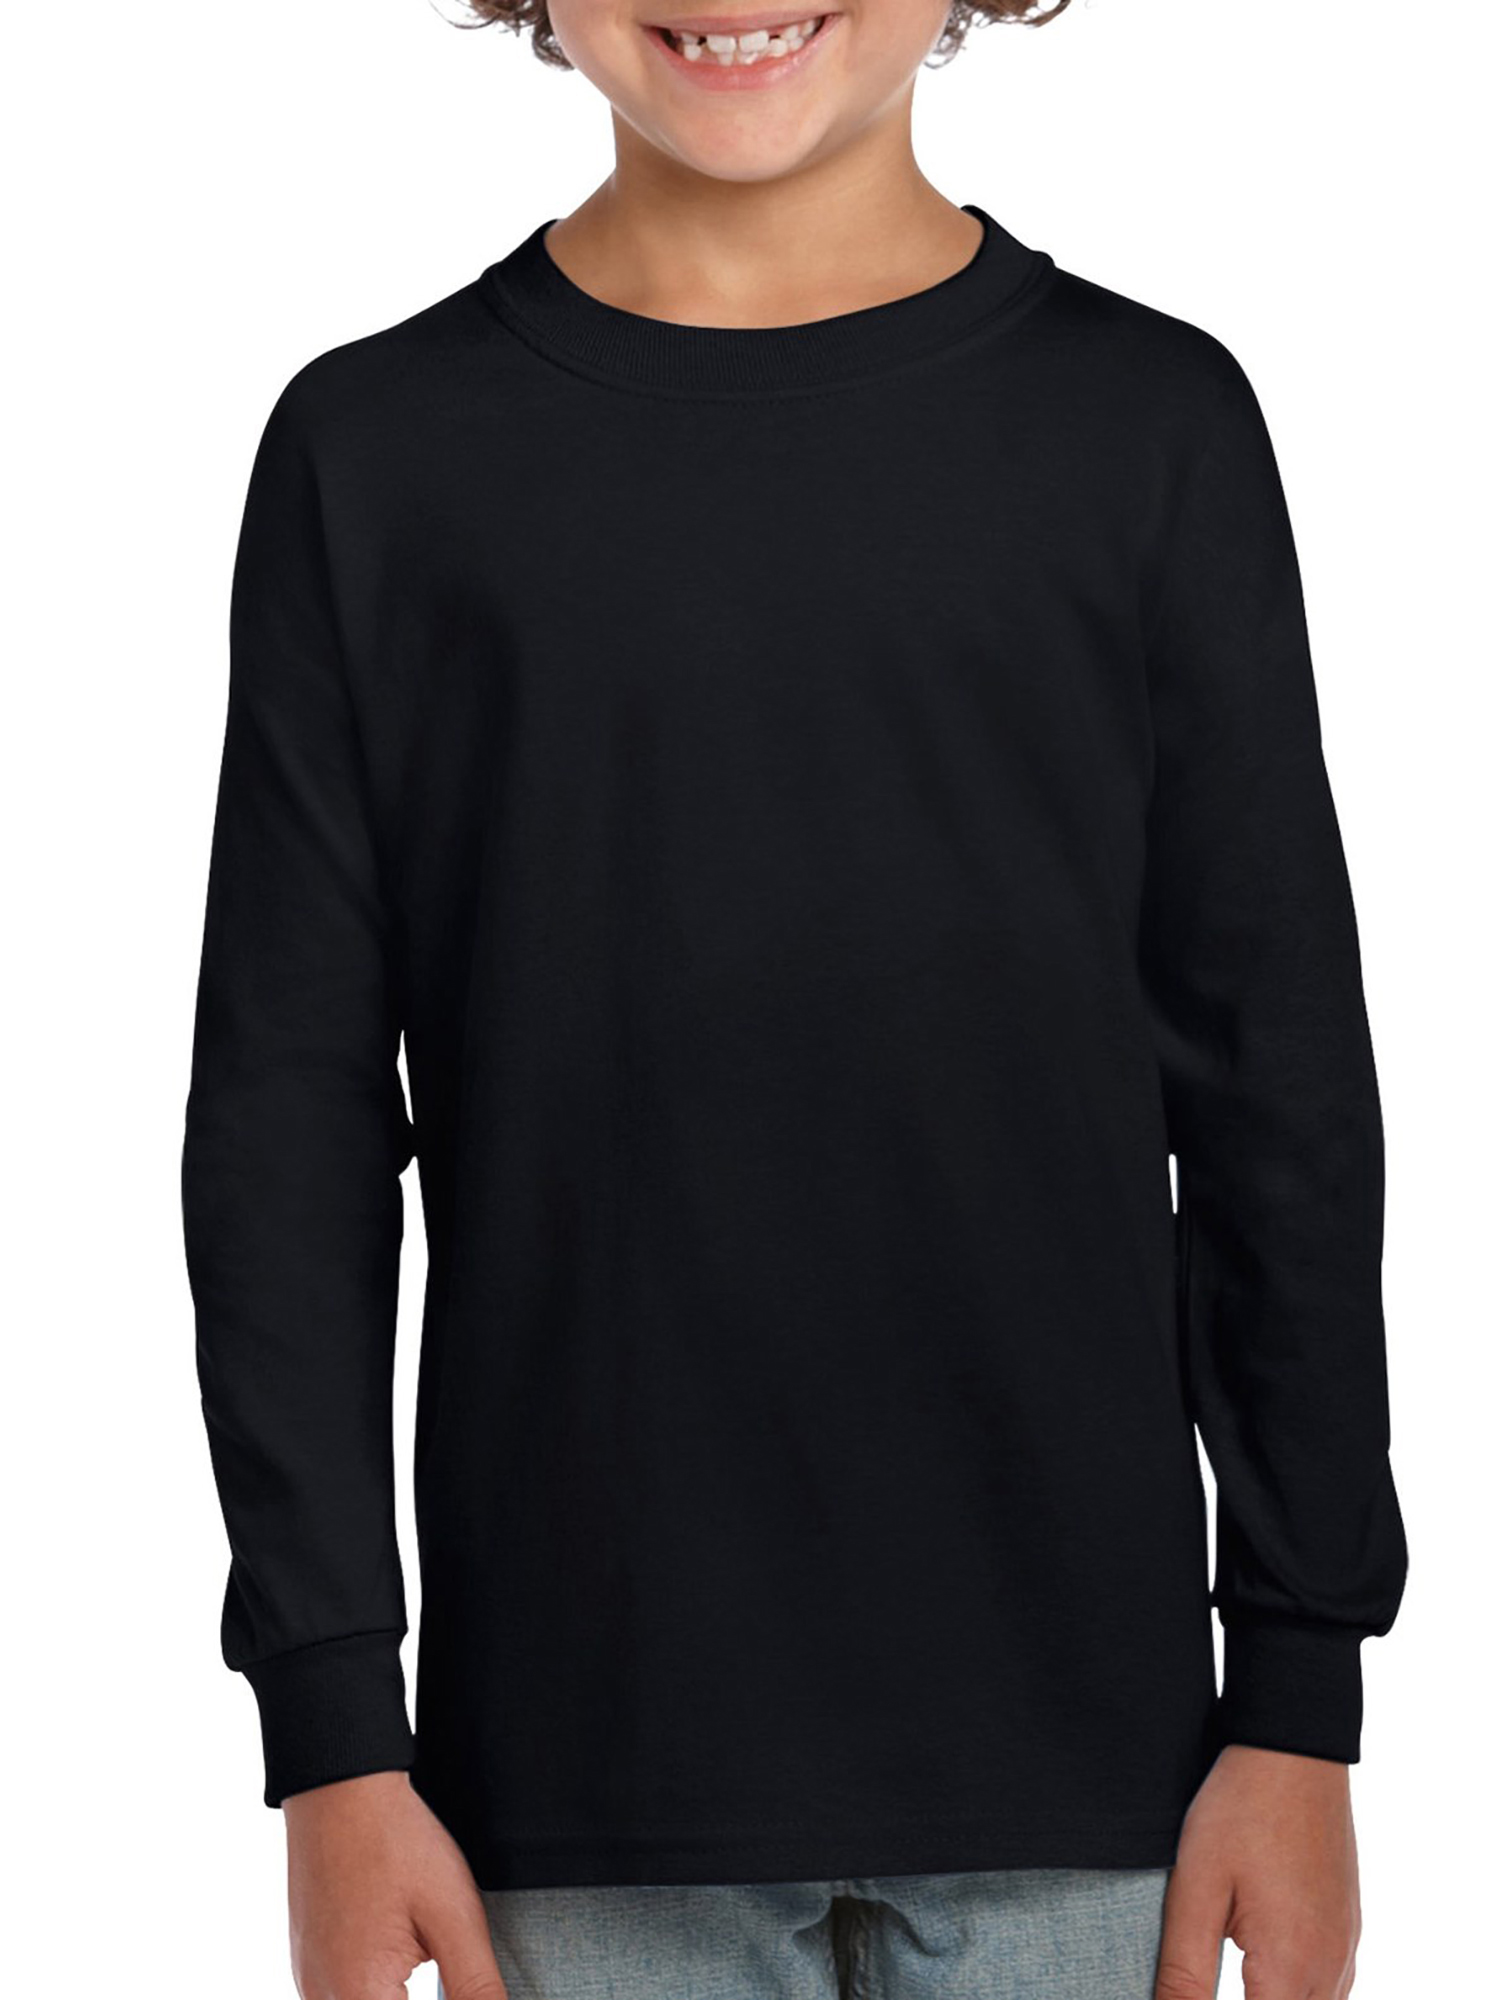 Gildan Classic Youth Long Sleeve T-Shirt